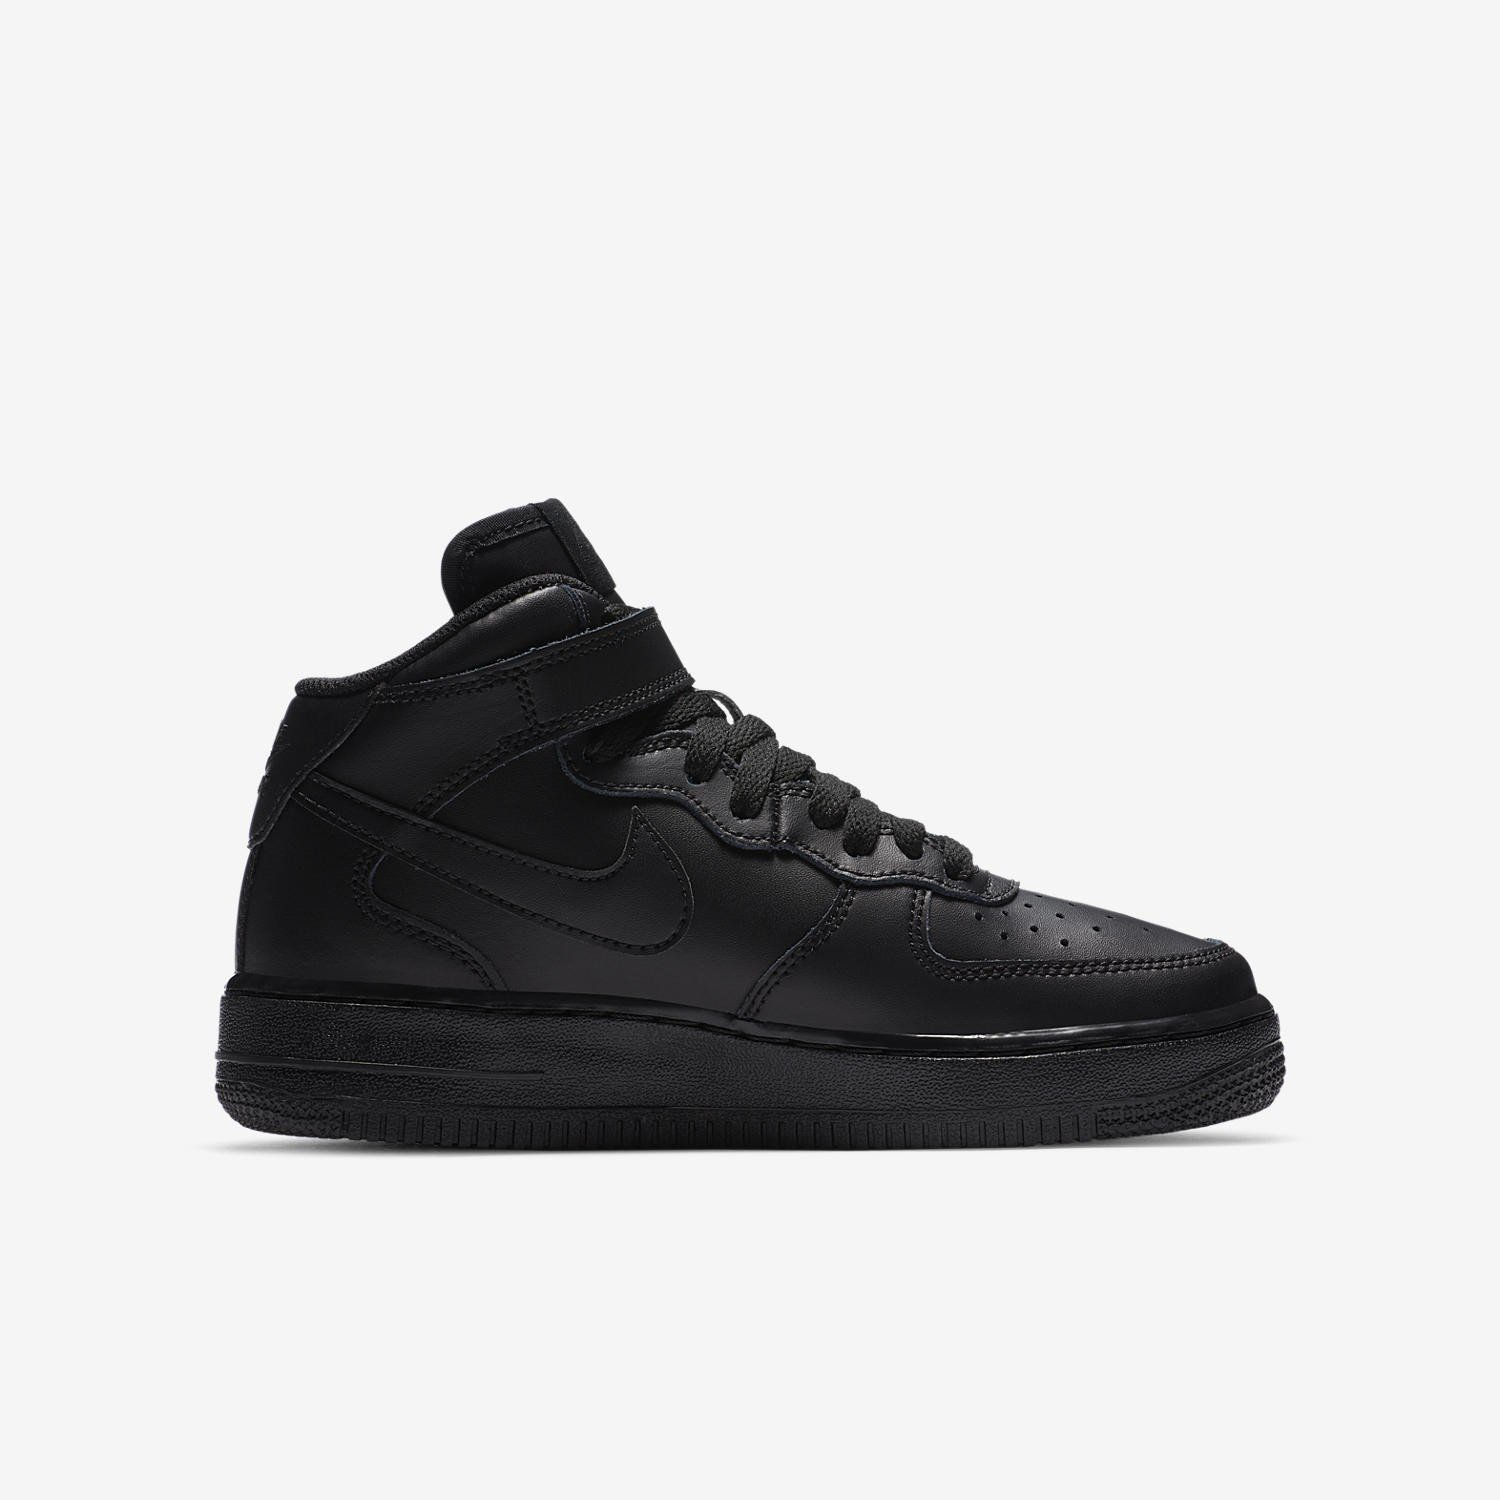 Buty juniorskie Nike Air Force 1 | sklep sneakershop.pl